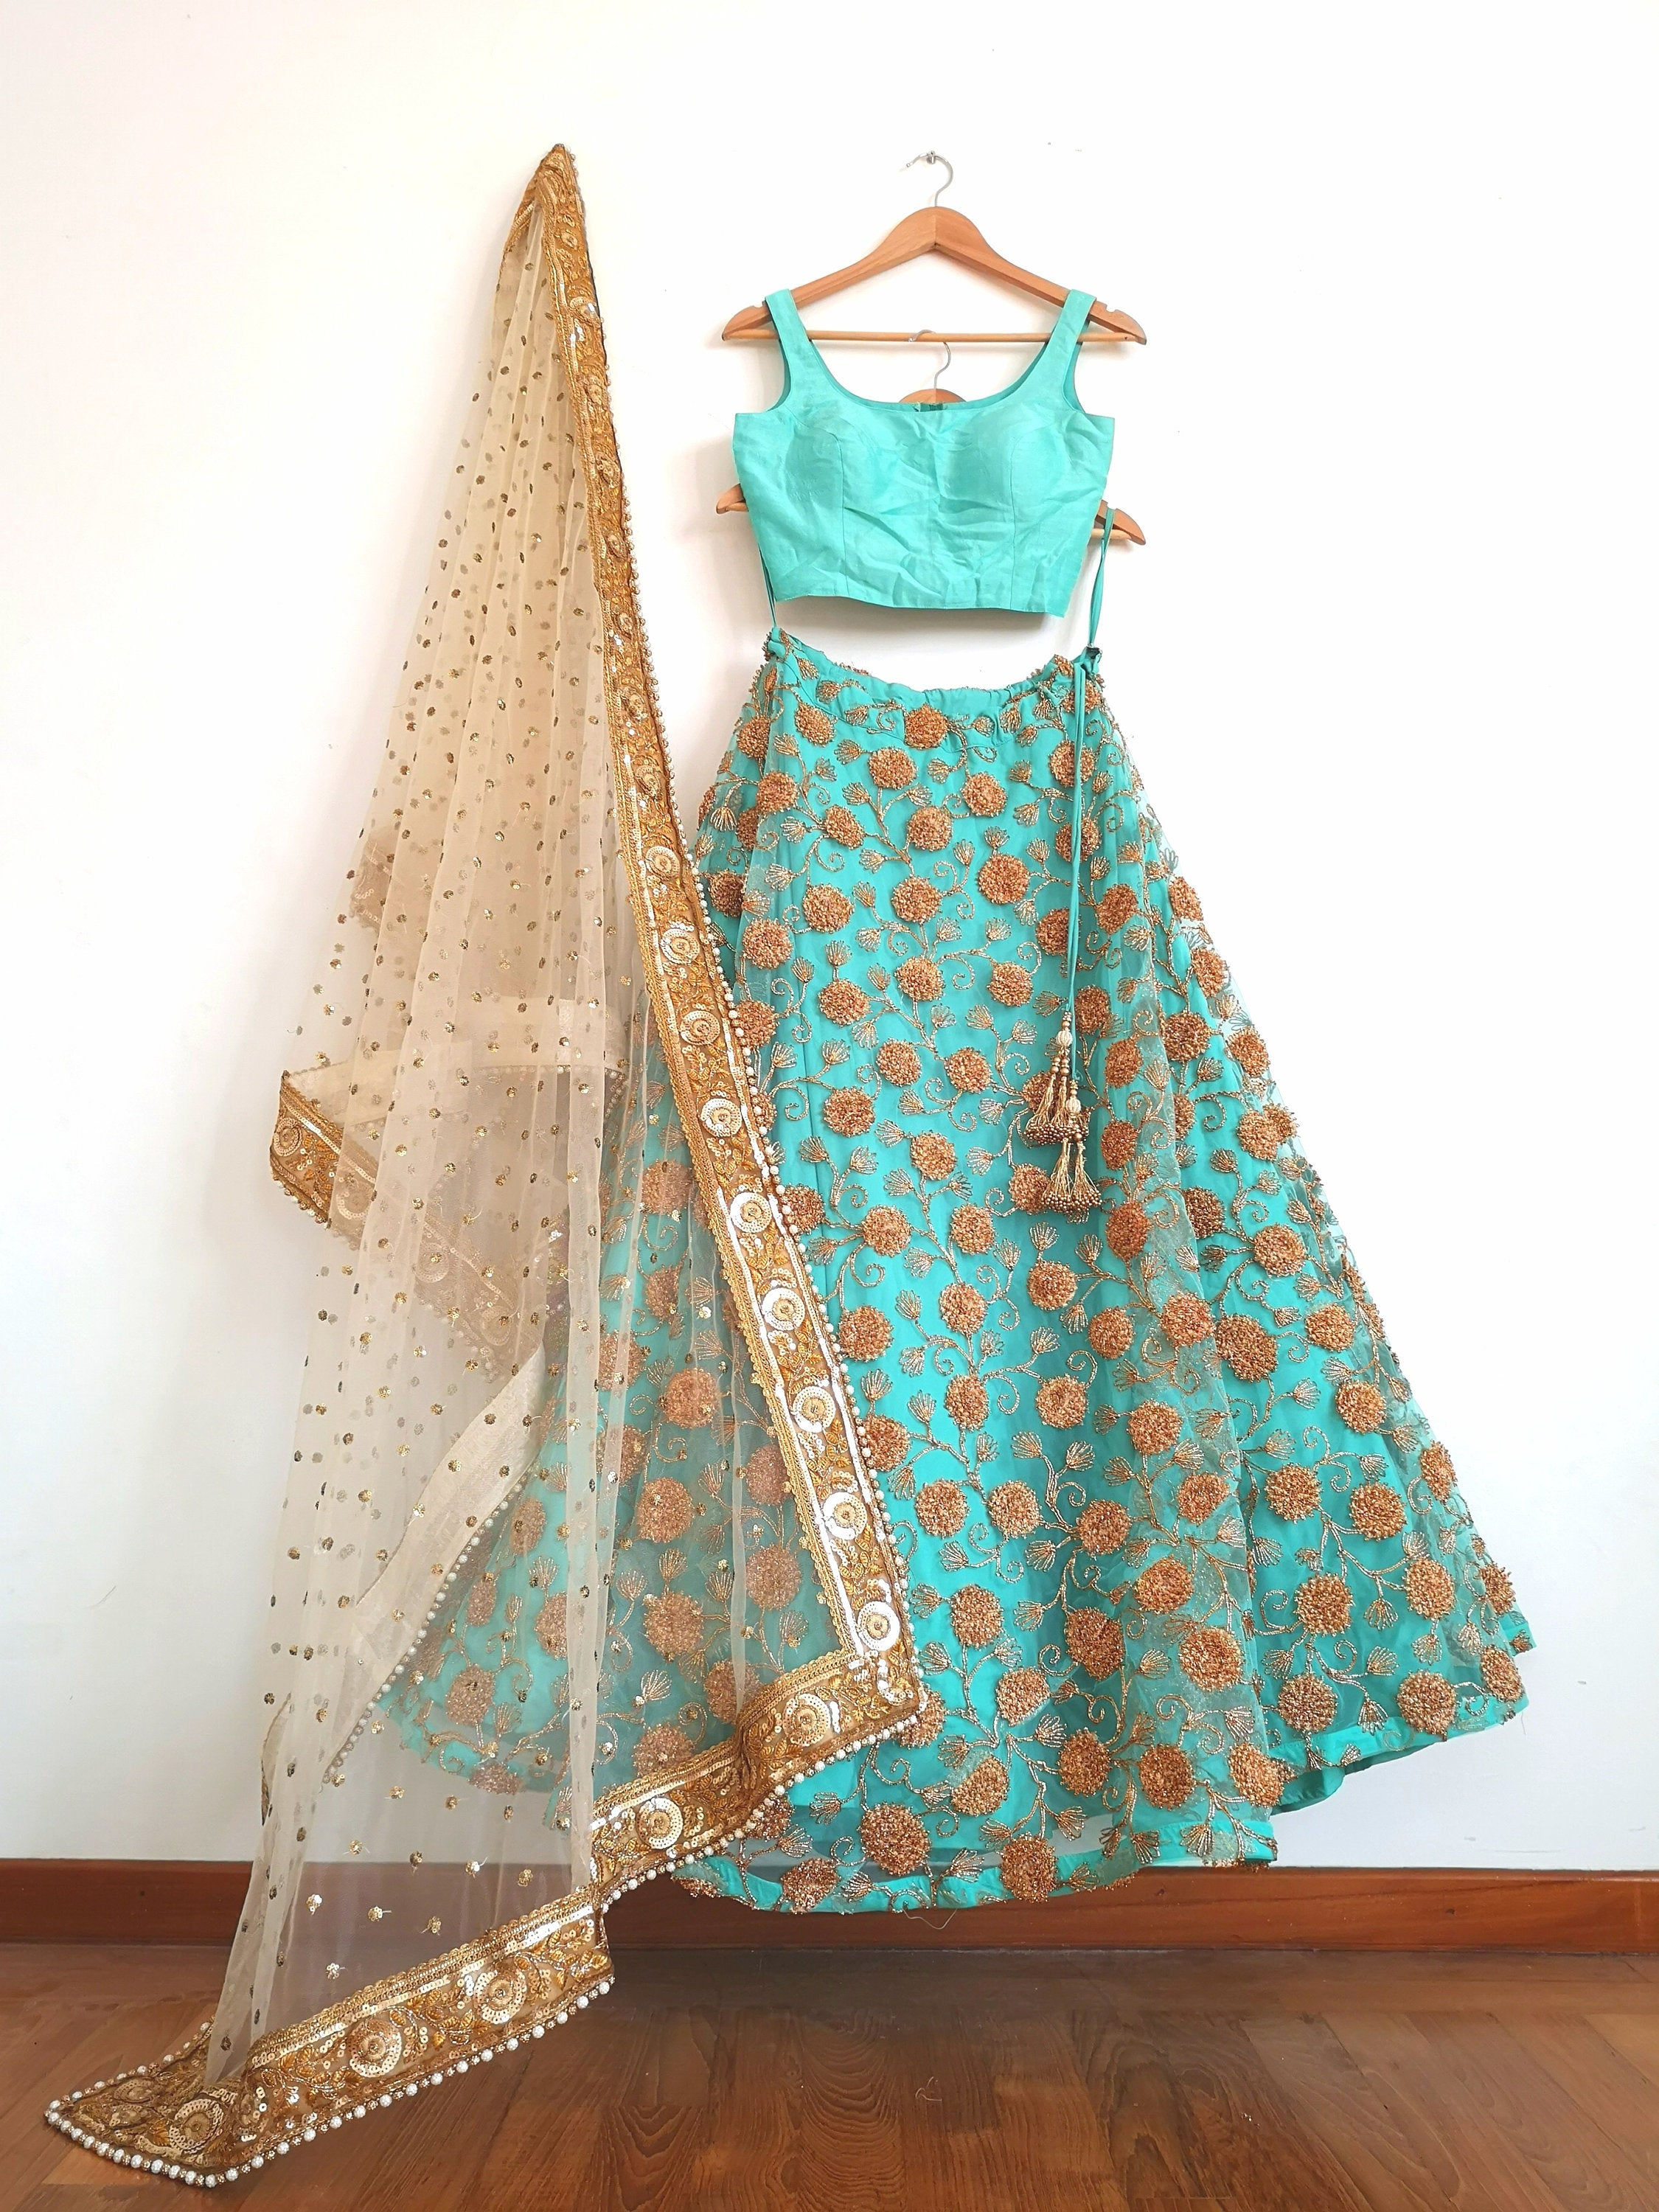 Sky blue lehenga & semi raw silk blouse crop top gold net dupatta prom graduation western Indian Pakistani wedding bride bridal bridesmaid - Pink Chunari